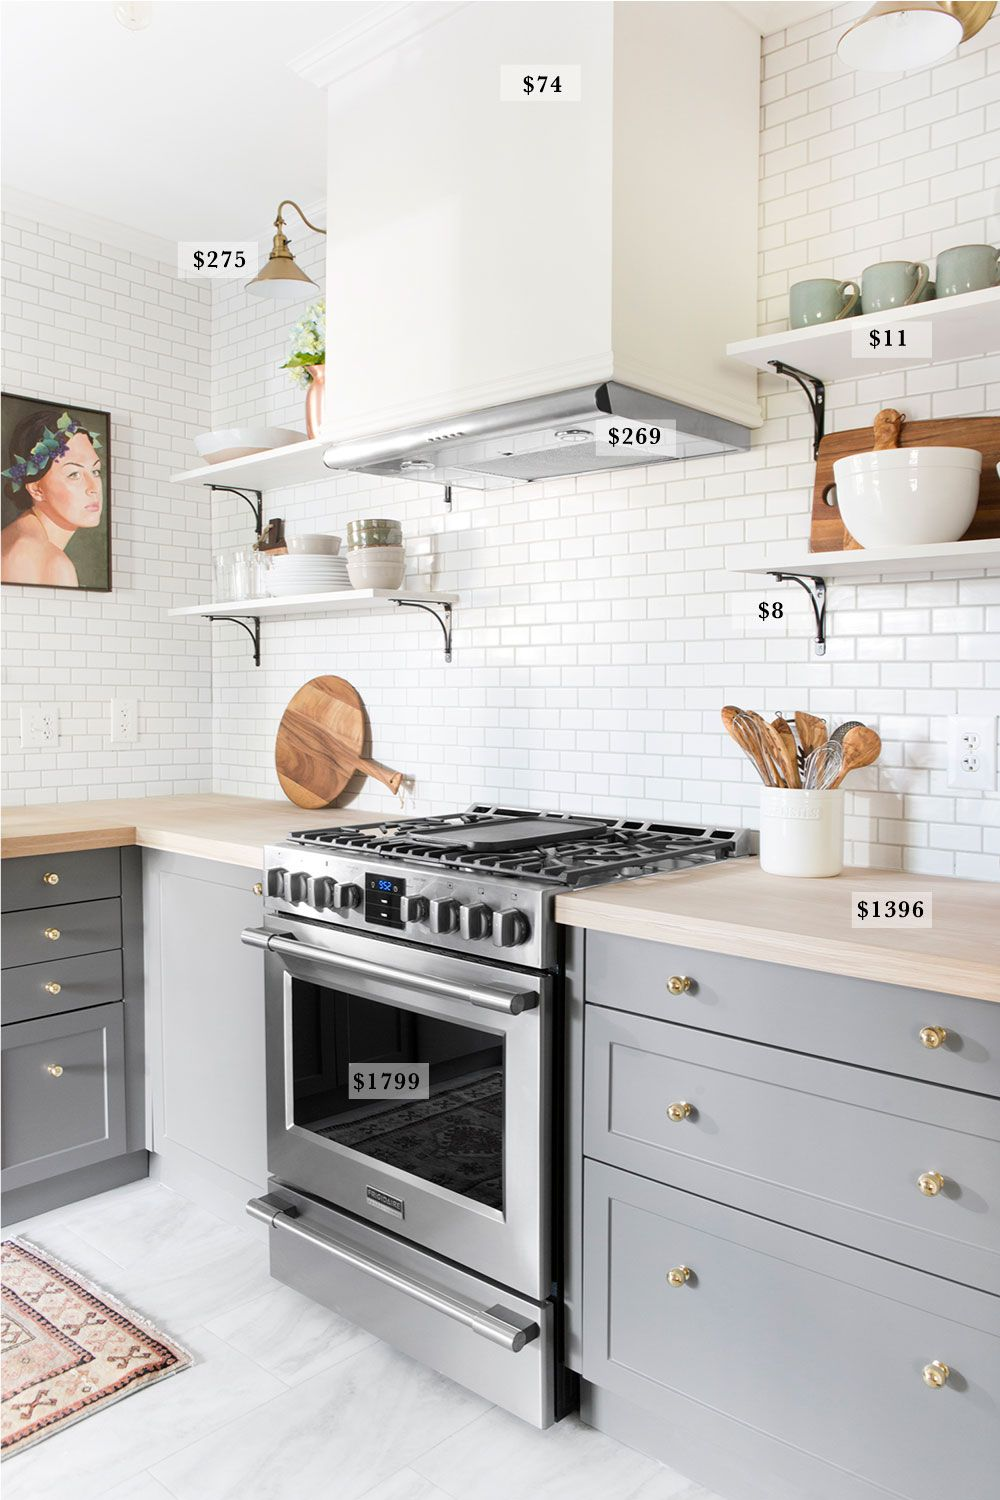 A Budget Breakdown of the Pittsburgh Kitchen | Vent hood, Budgeting ...